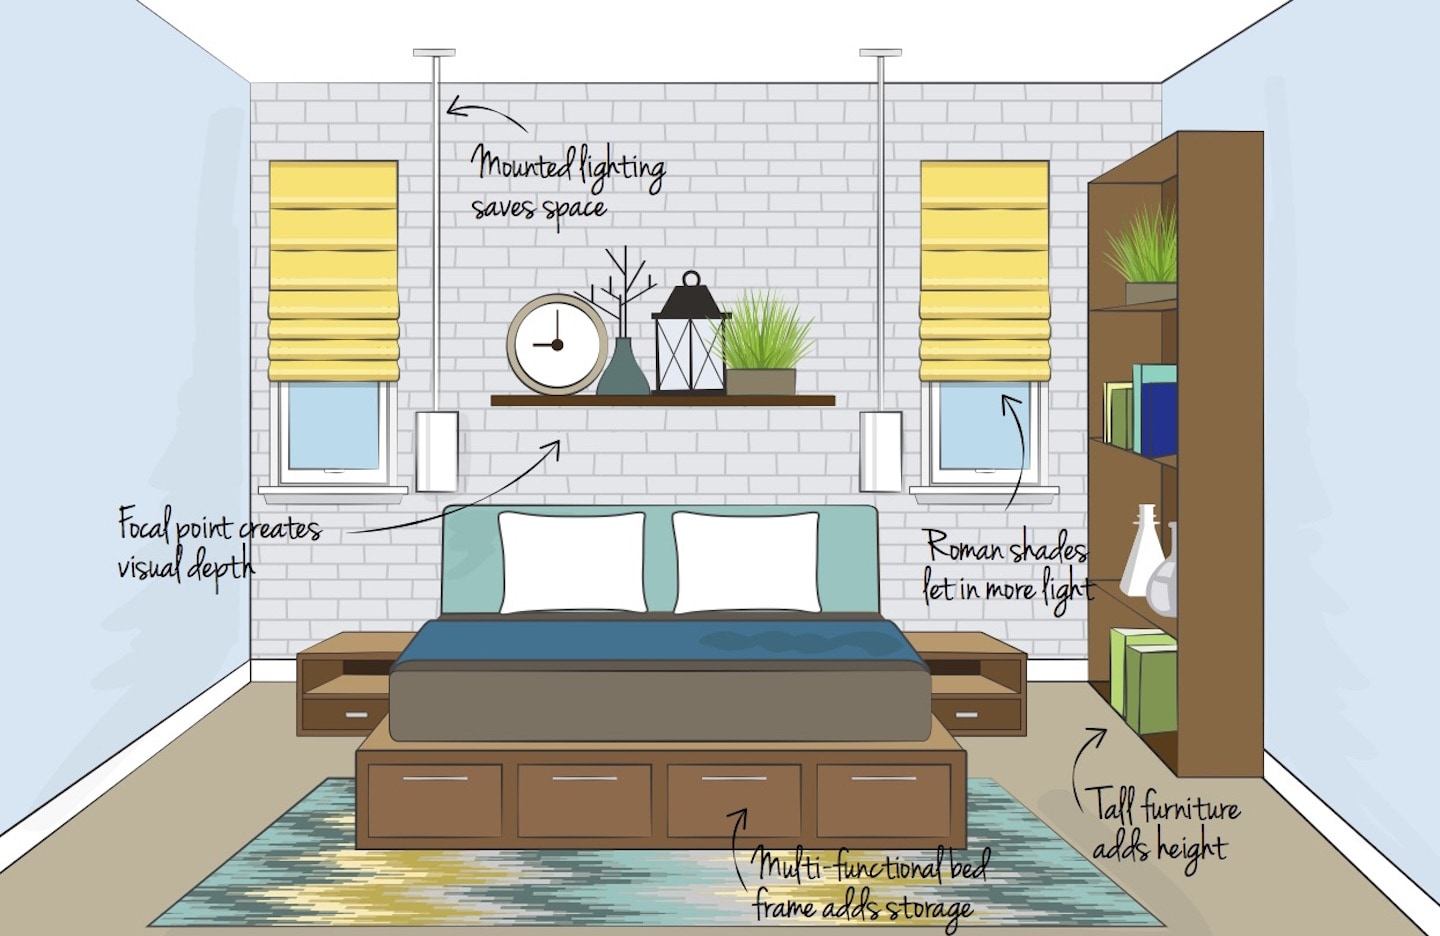 Small bedroom illustration with design tips included.